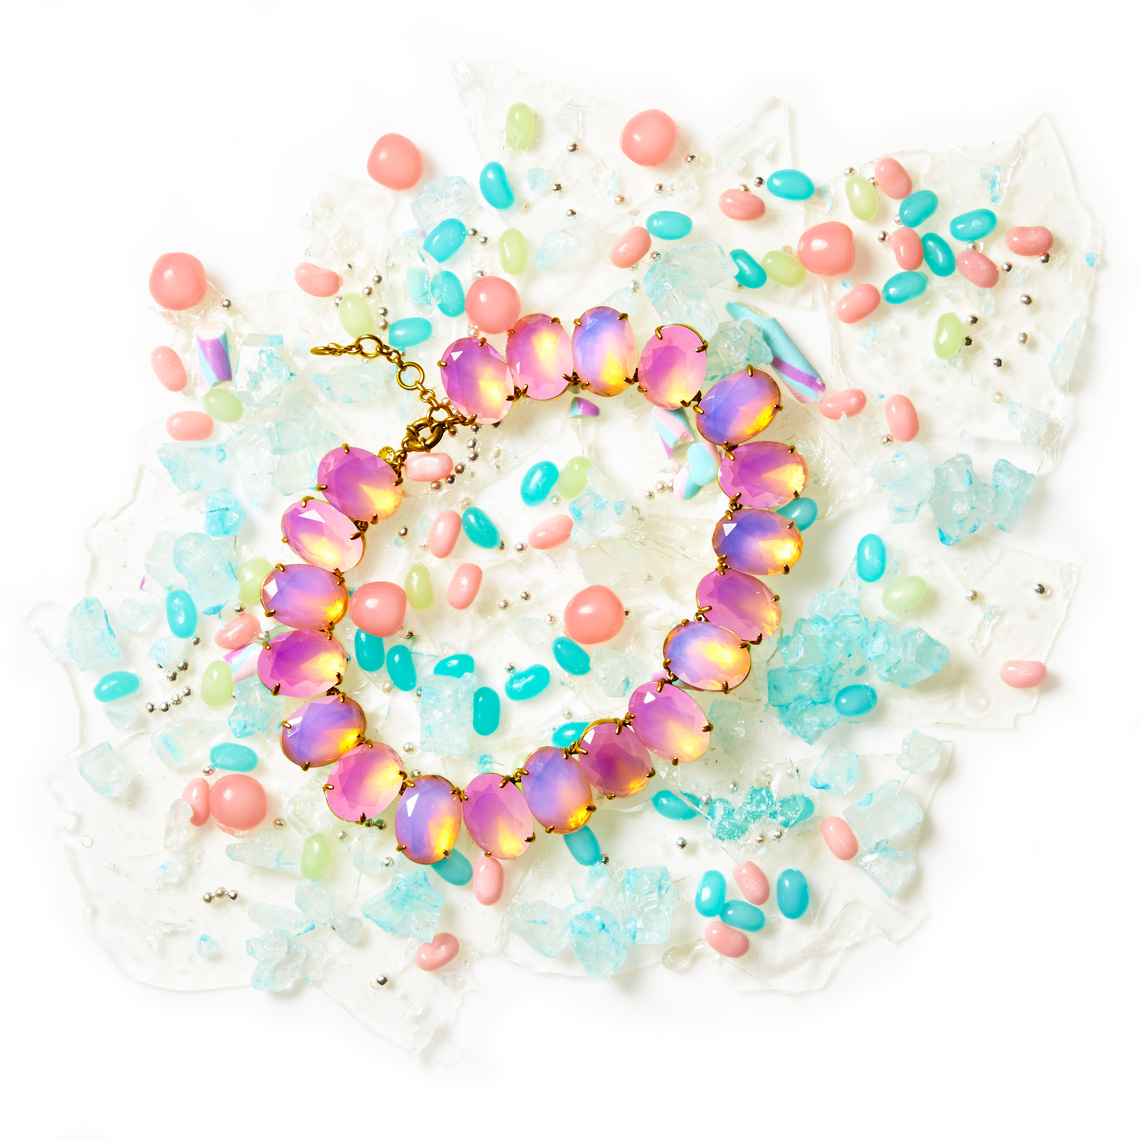 2015_03_08_CandyNecklace2_Purple_FINAL_sRGB_DesignX